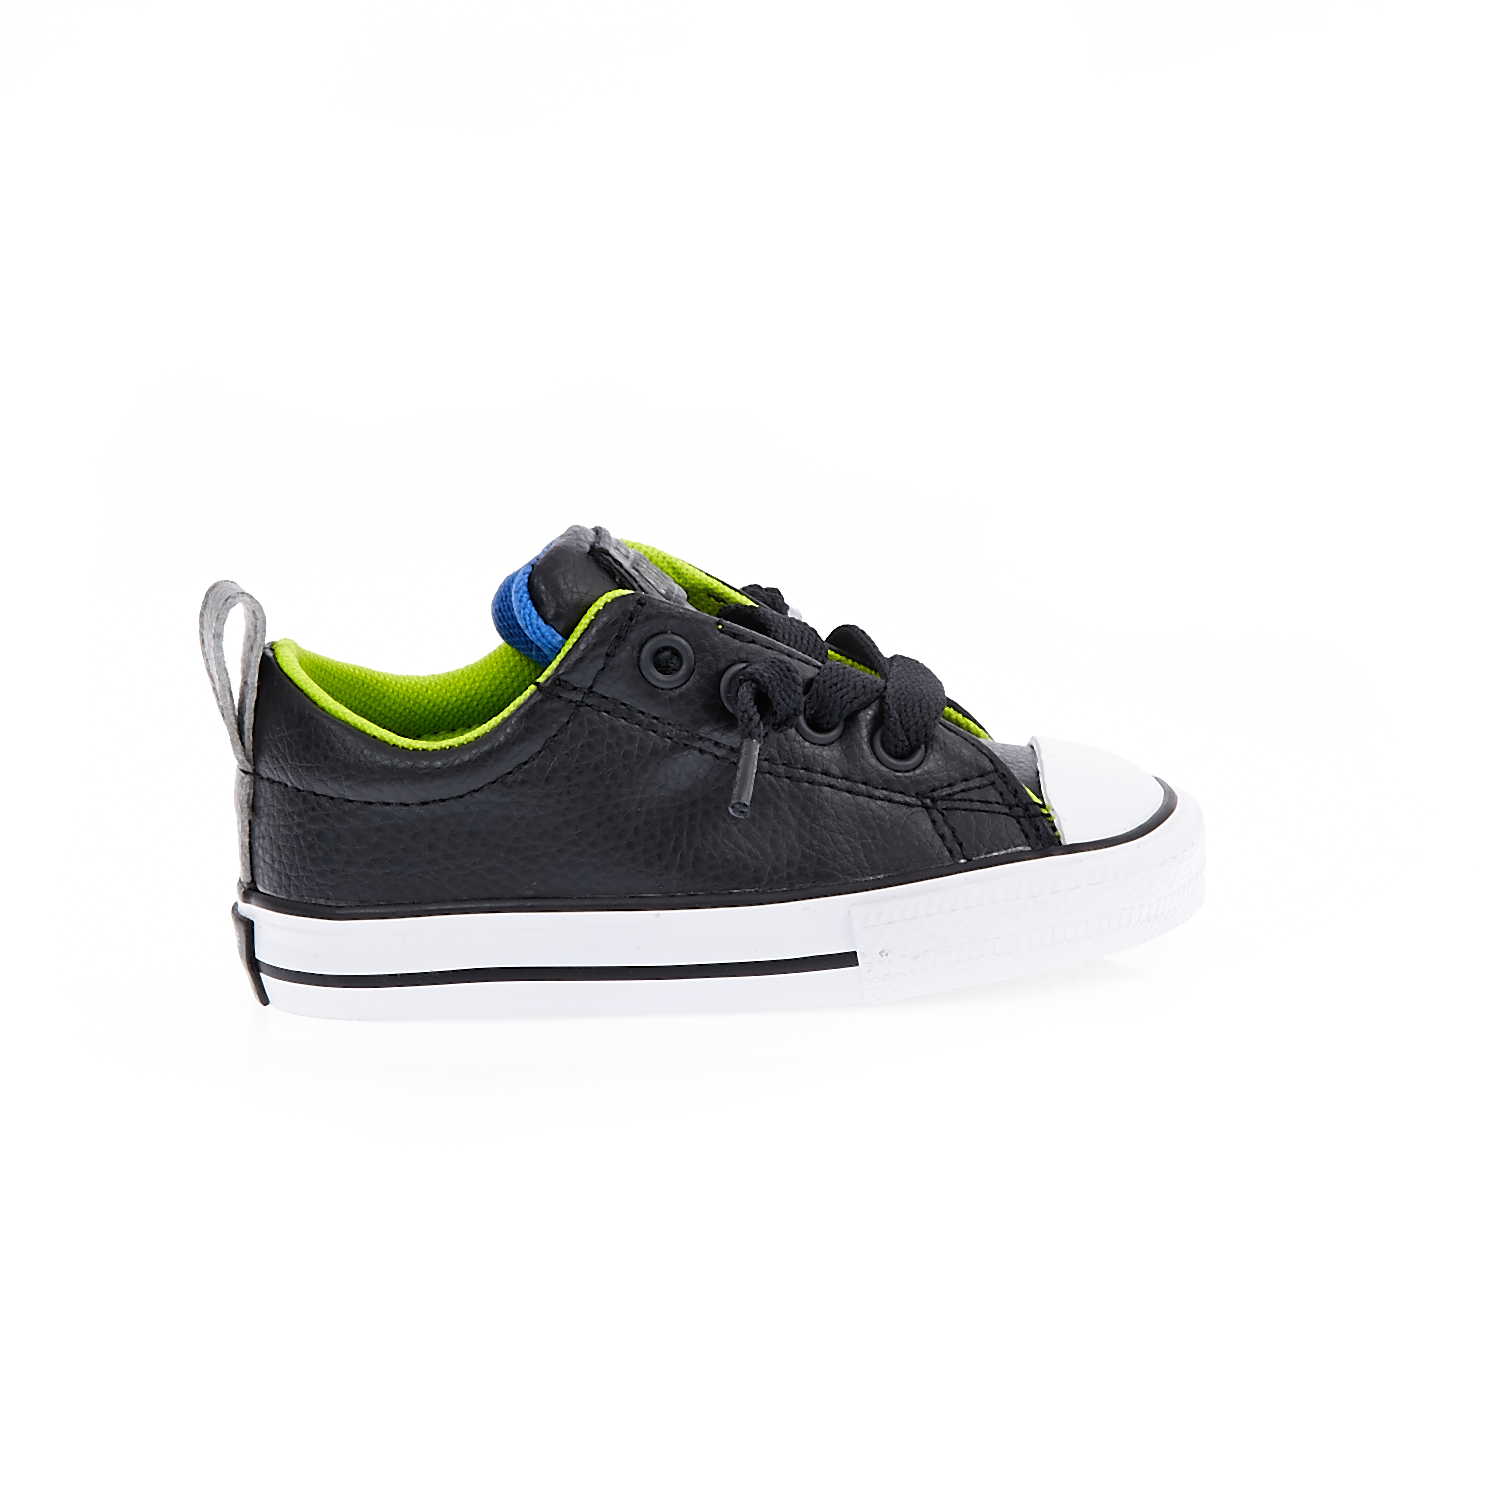 CONVERSE – Βρεφικά παπούτσια Chuck Taylor All Star Street S μαύρα